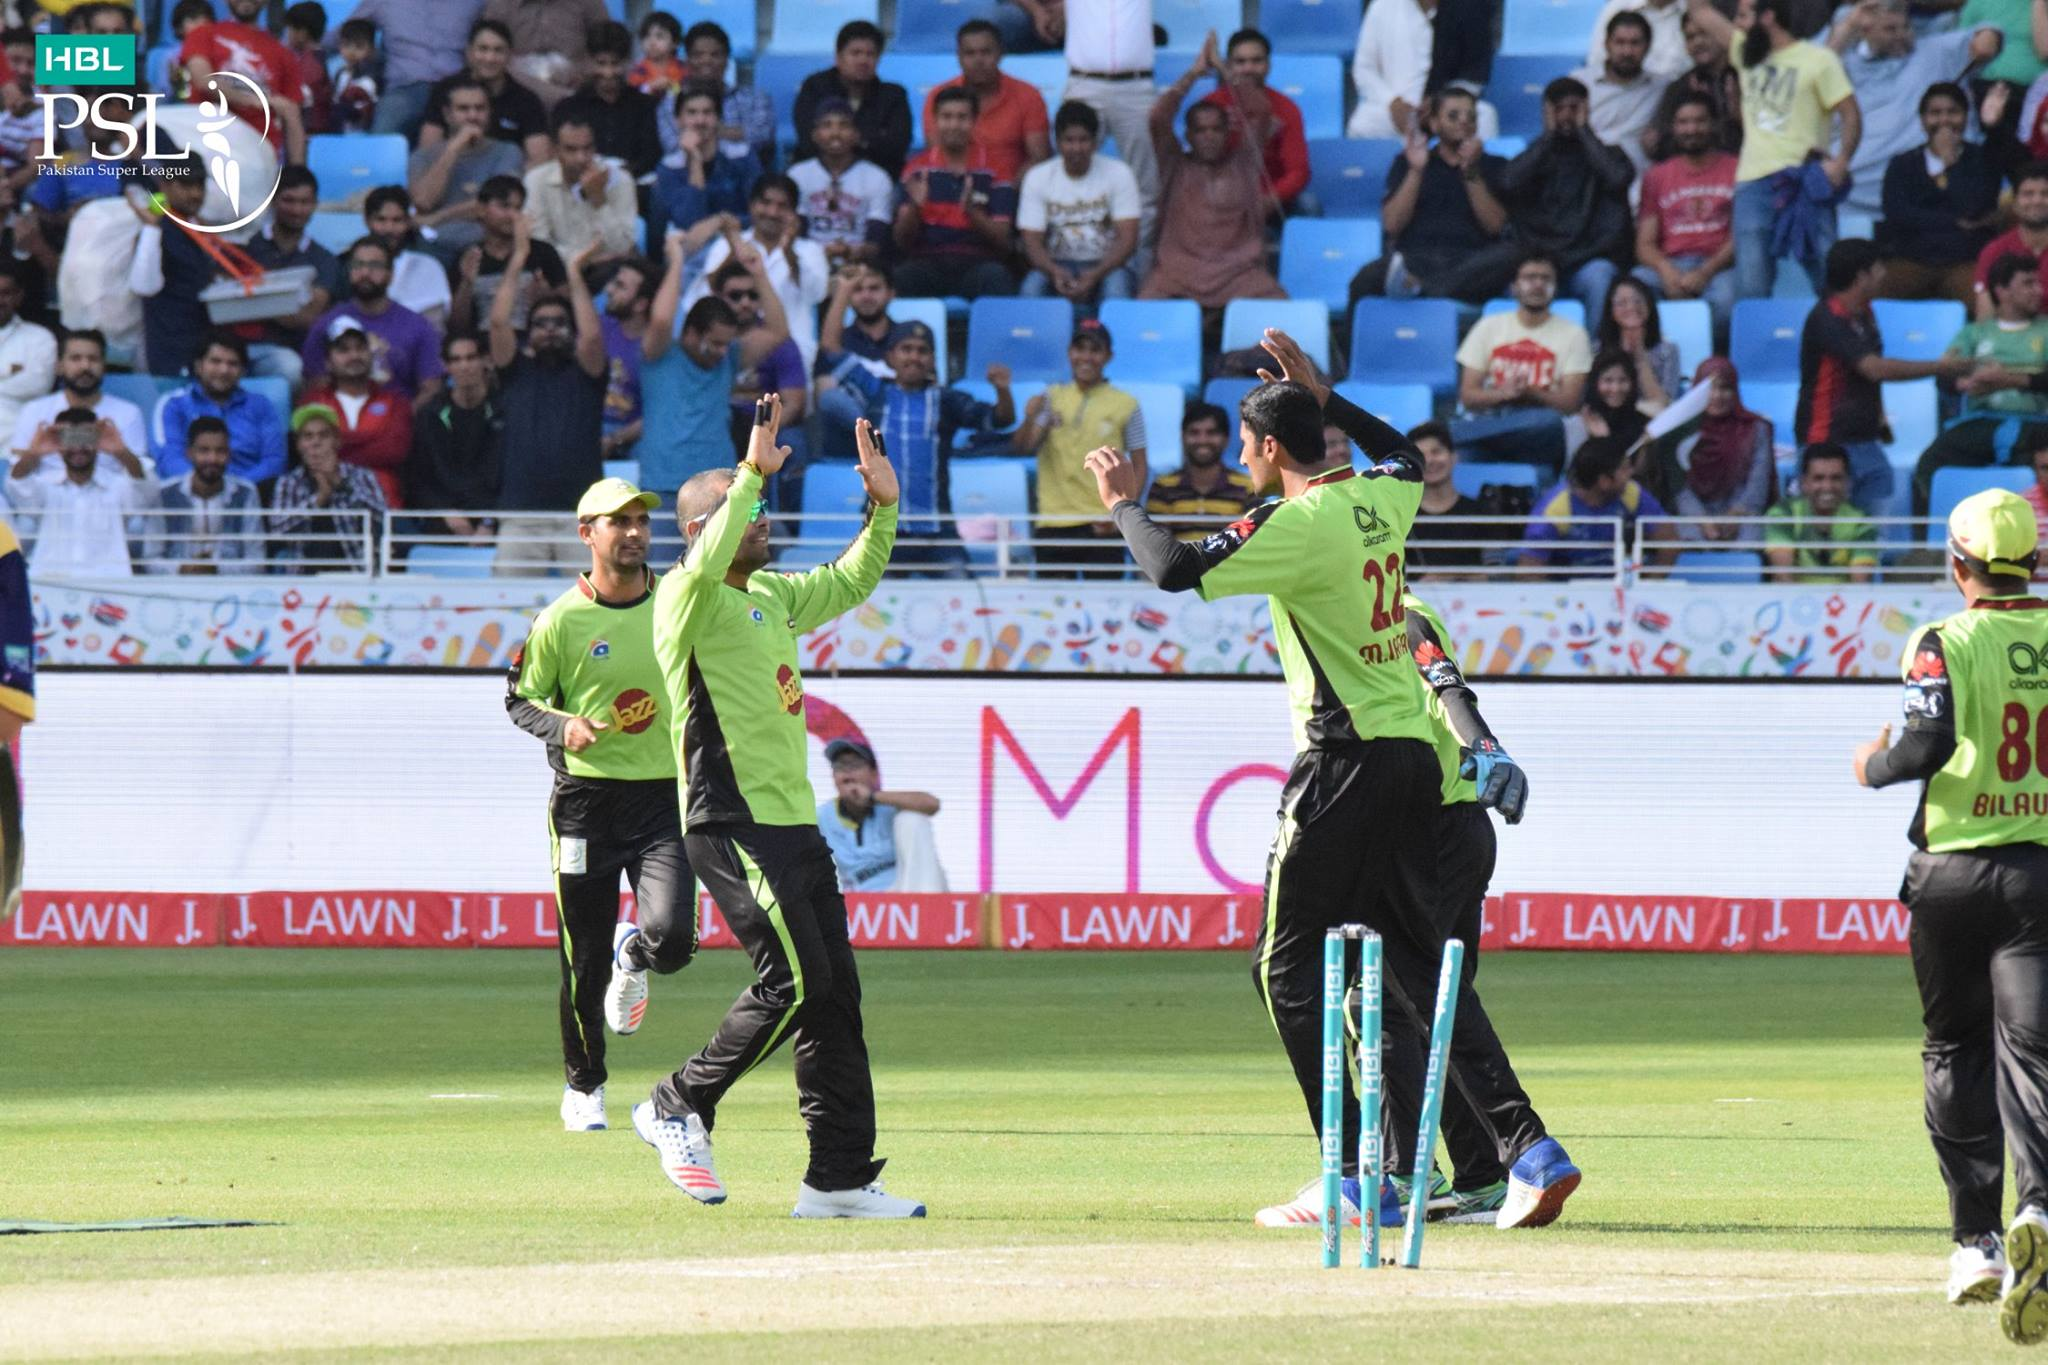 making amends lahore would be looking to avenge their first match defeat to sarfraz ahmed s men after the quetta outfit somehow pipped them to a win when brendon mccullum s men looked favourites to win photo courtesy psl